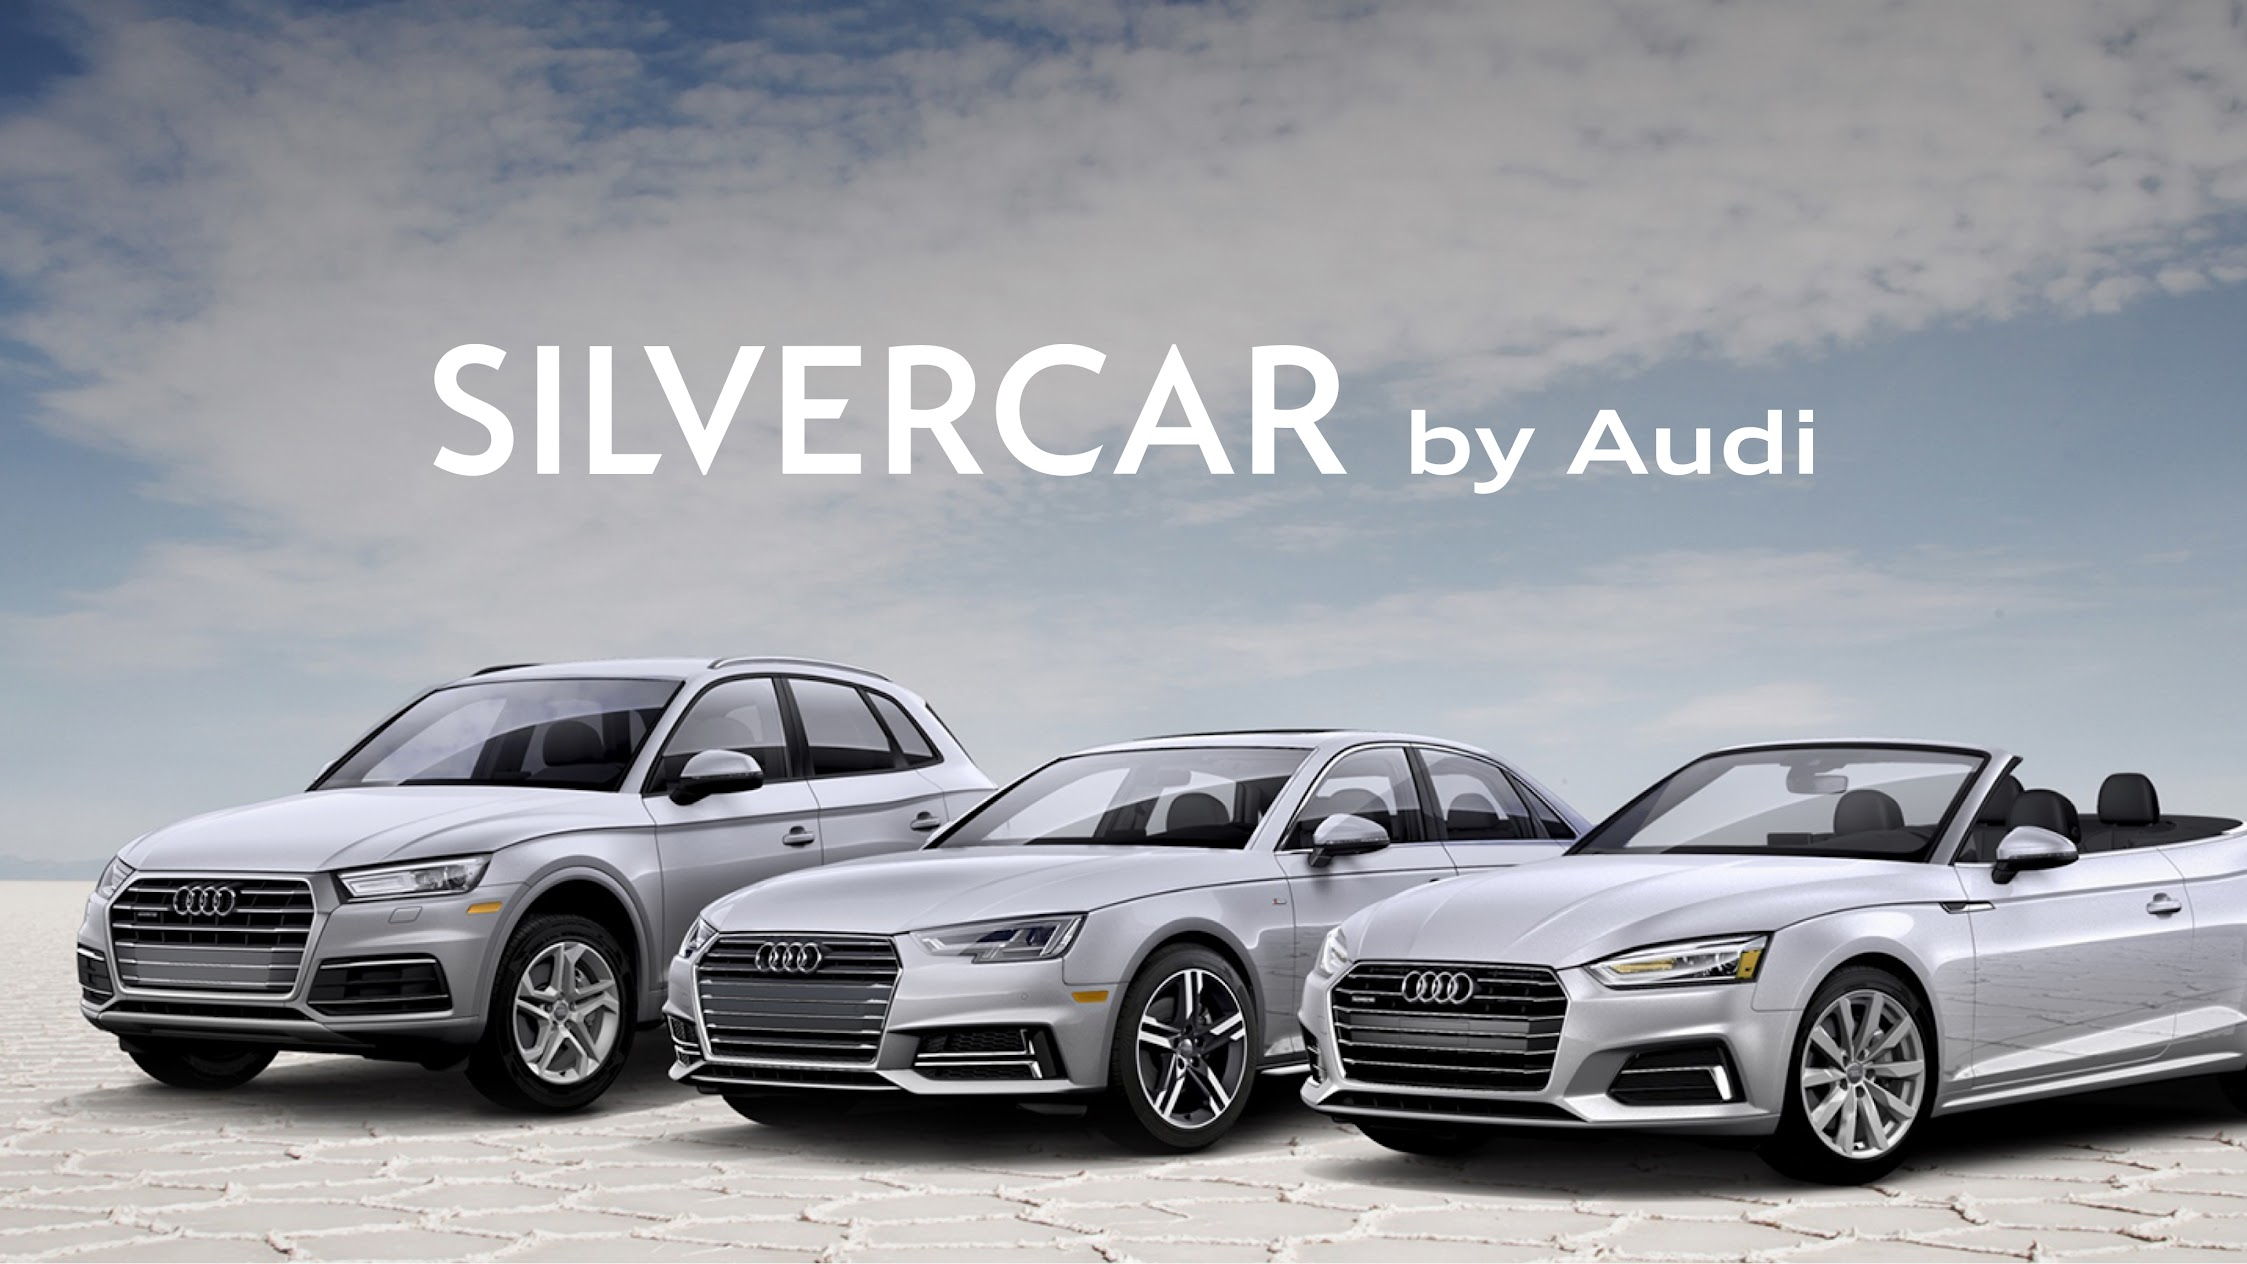 Android Apps By Silvercar On Google Play - Audi silver car